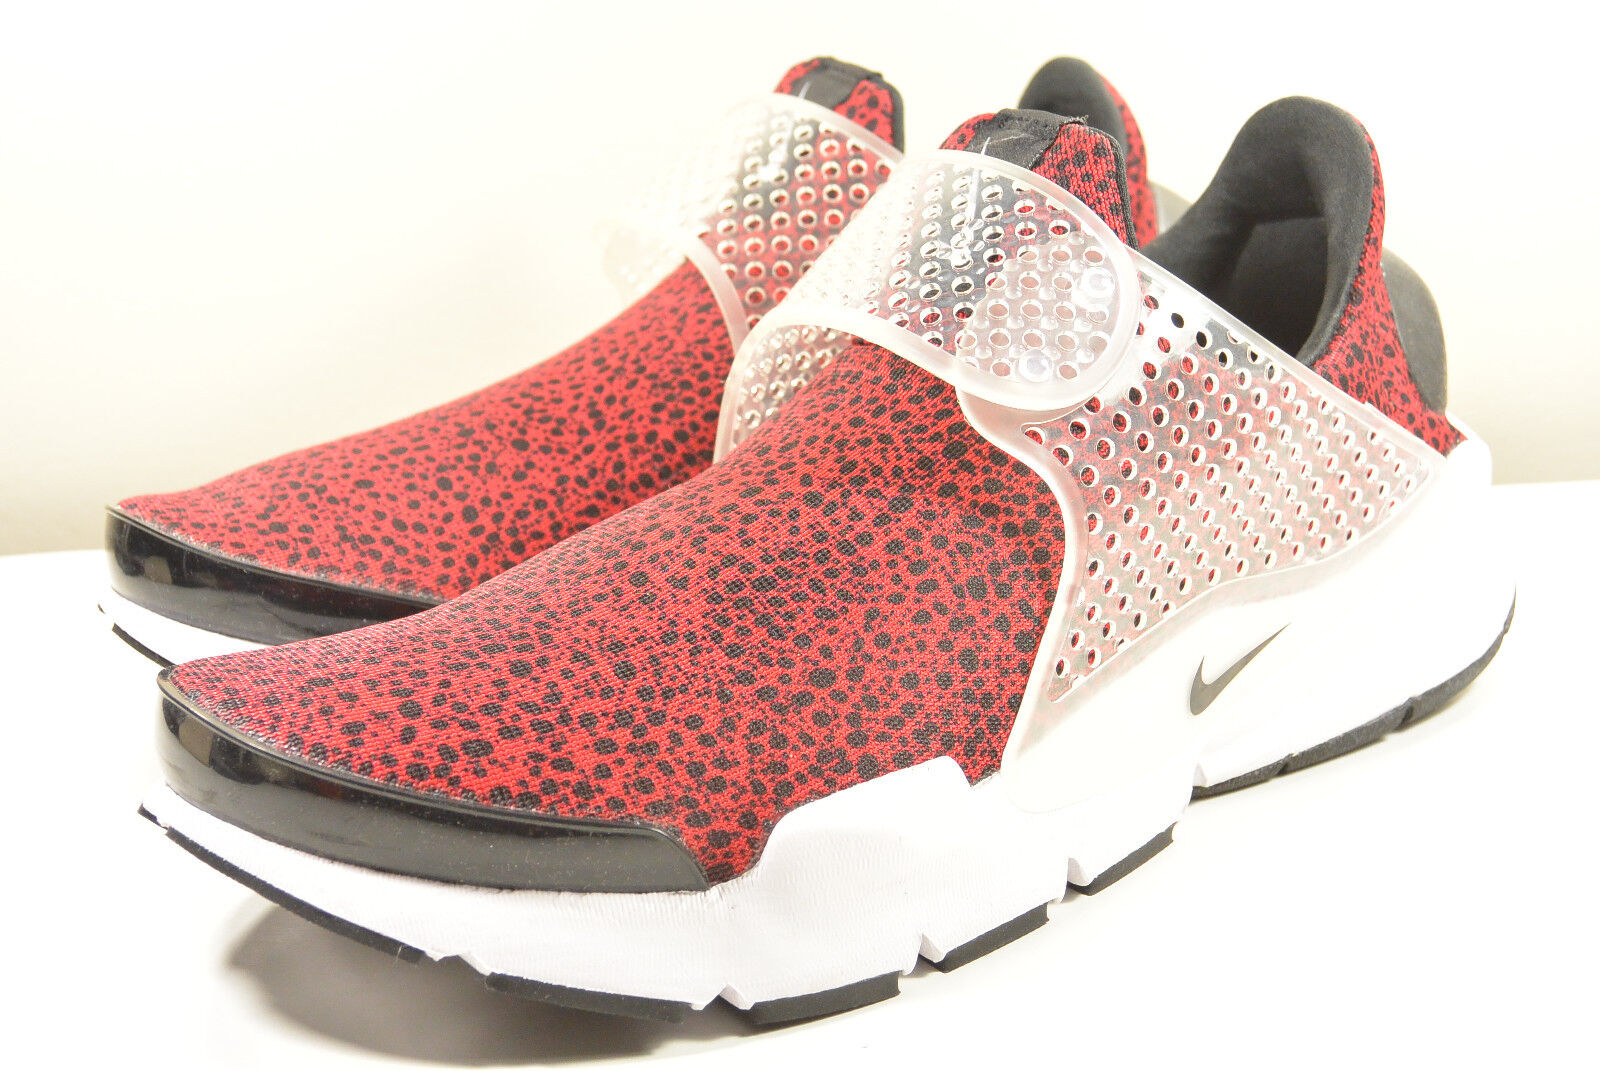 DS DS DS NIKE 2017 SOCK DART GYM RED SAFARI 8 - 13 PRESTO WOVEN MAX AIR FORCE 90 1 ce175a